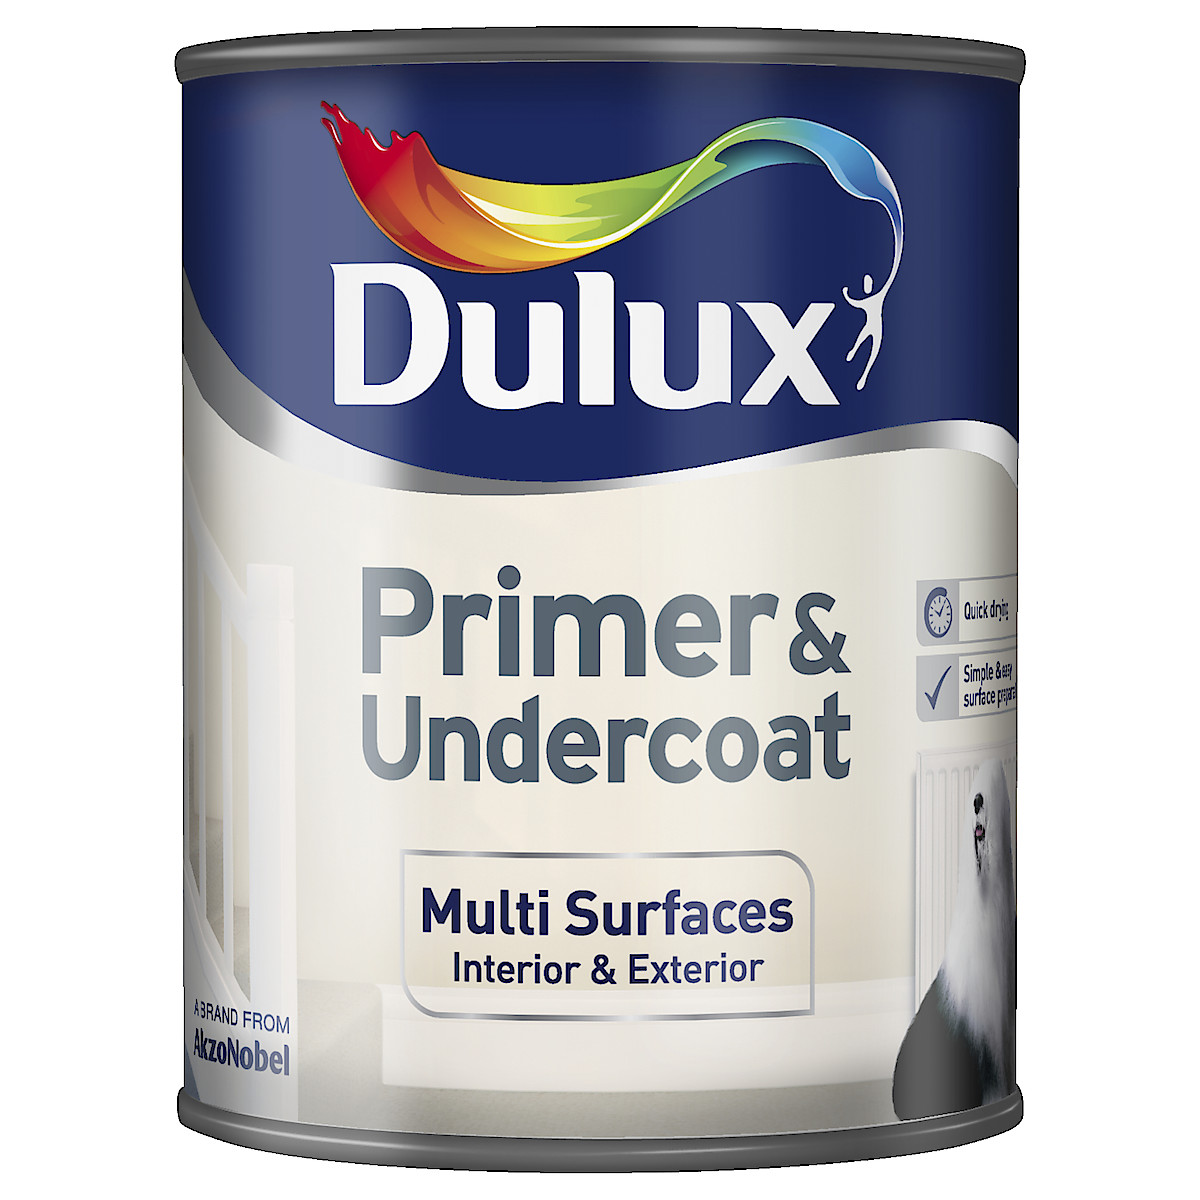 Dulux Quick Drying Multi-Surface Primer Undercoat 750 ml